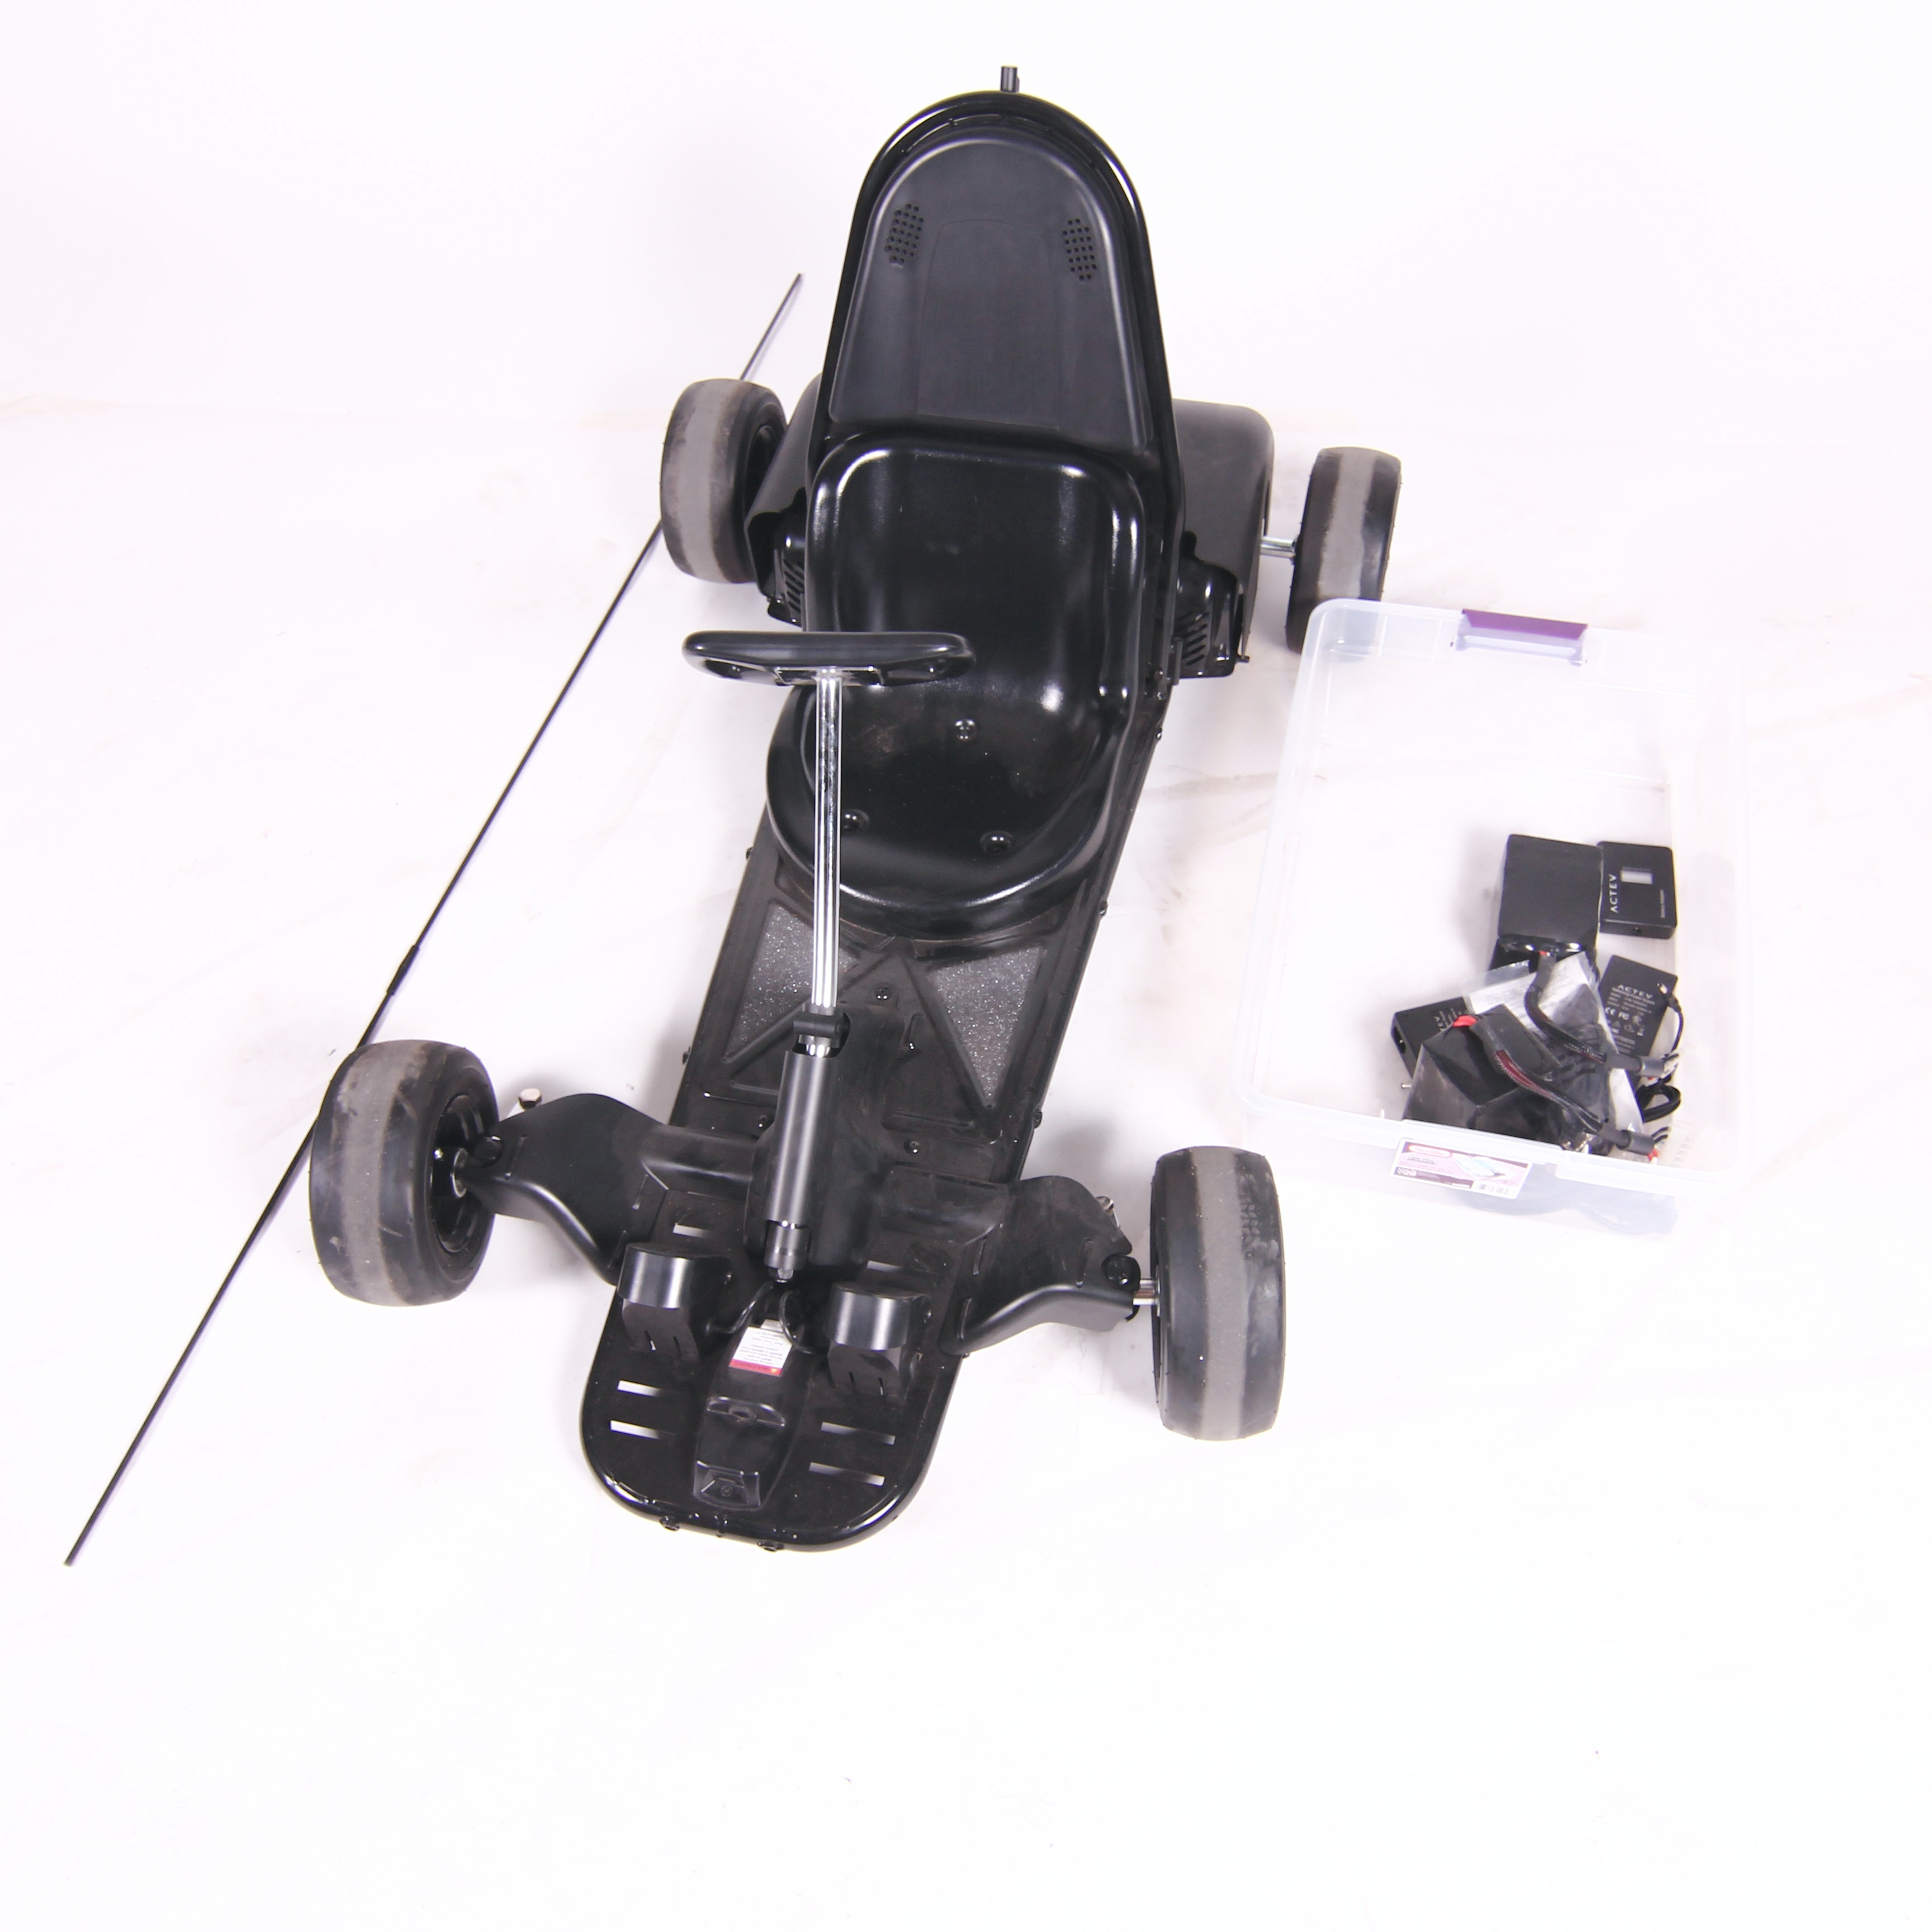 Actev Arrow Smart-Kart Children's Go-Kart